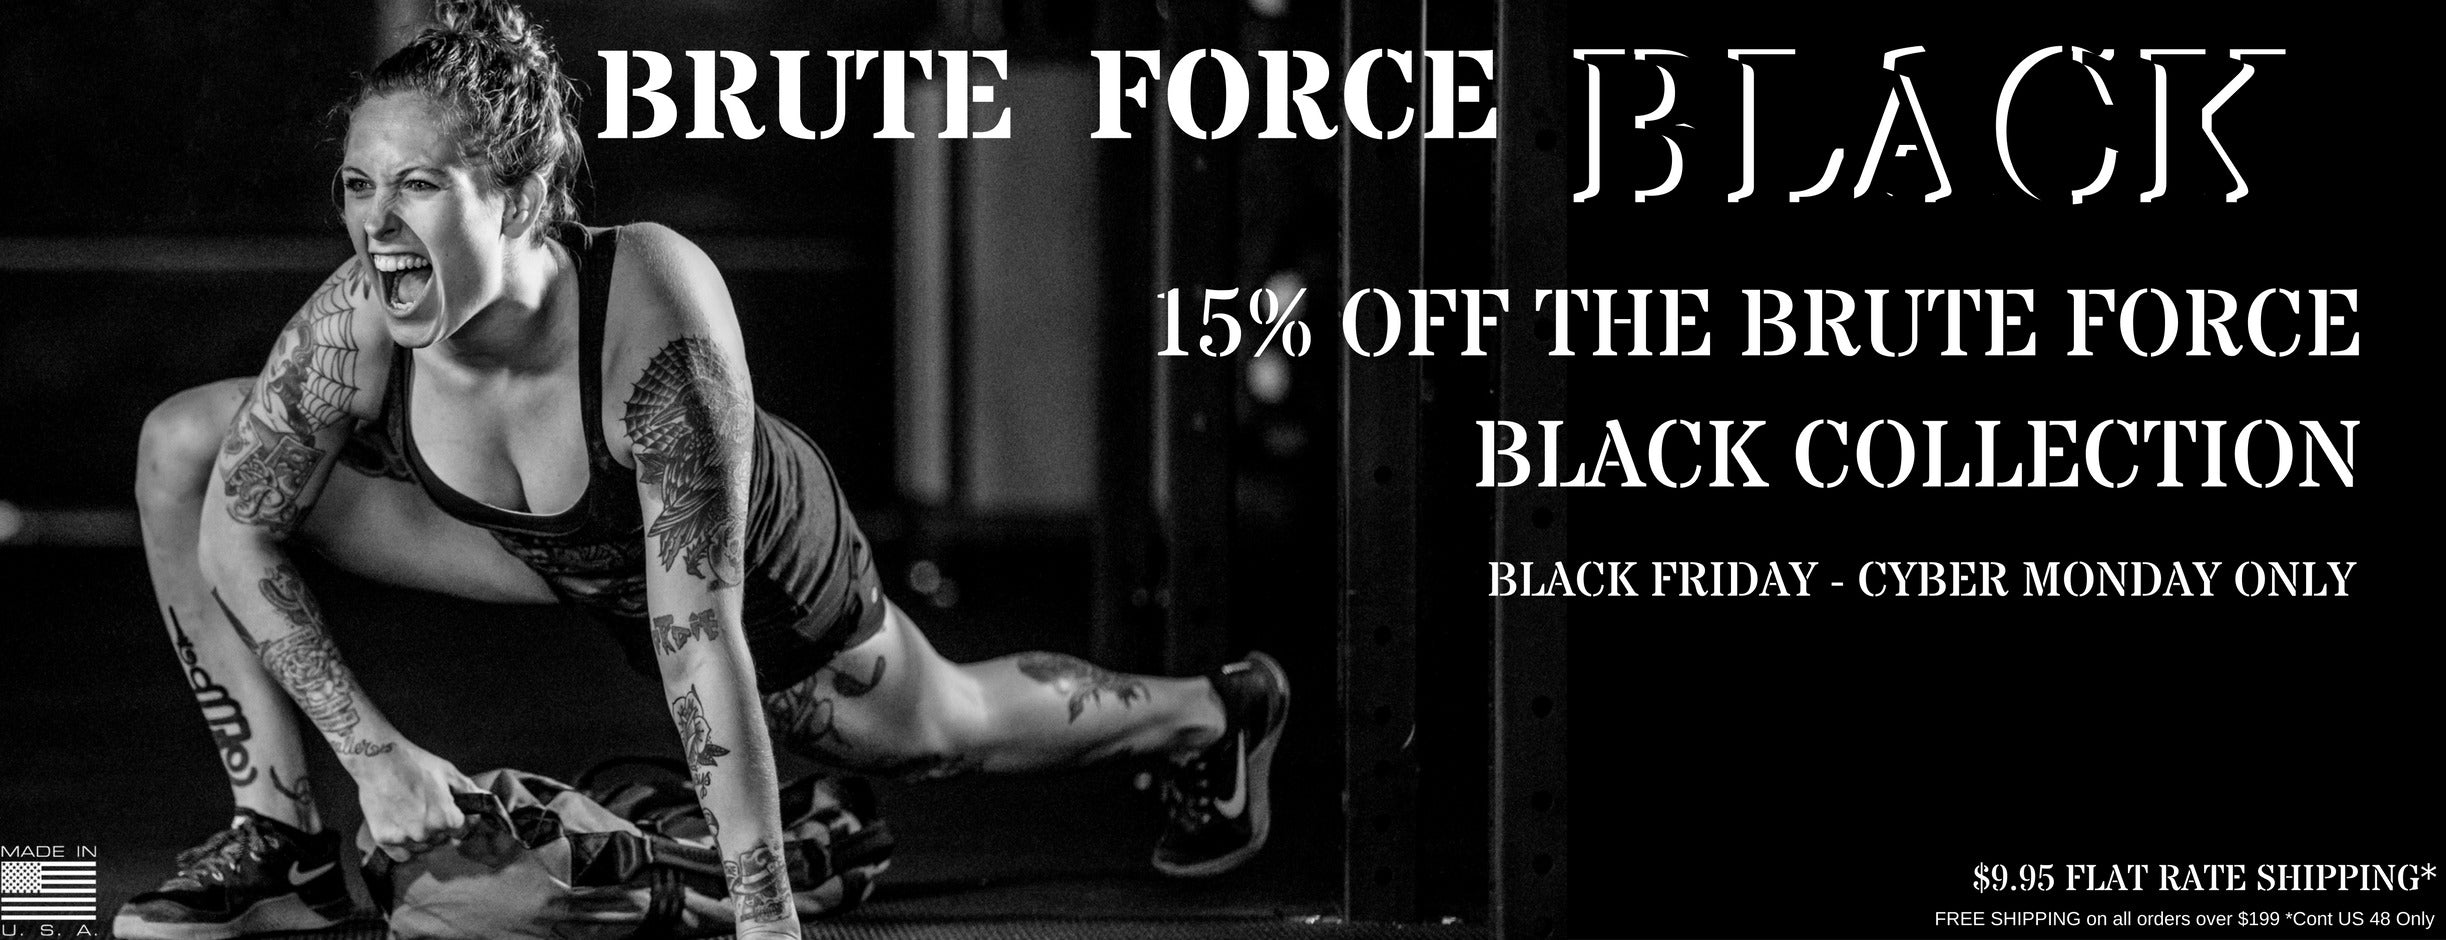 Brute Force Black Collection